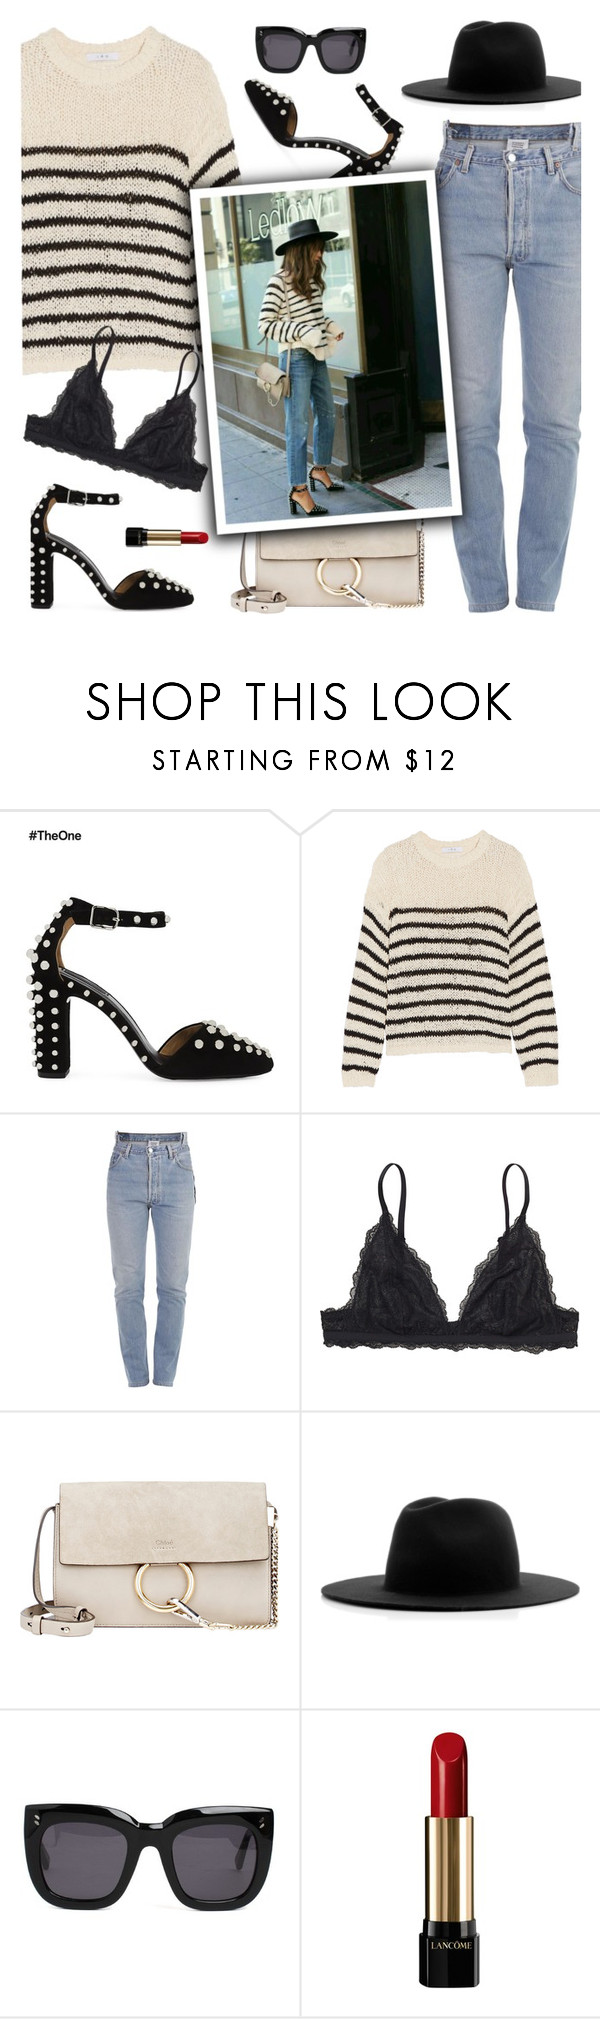 """Street Chic"" by ivka-detektivka ❤ liked on Polyvore featuring Alexander Wang, IRO, Vetements, Monki, Chloé, Études, STELLA McCARTNEY, Lancôme and StreetStyle"